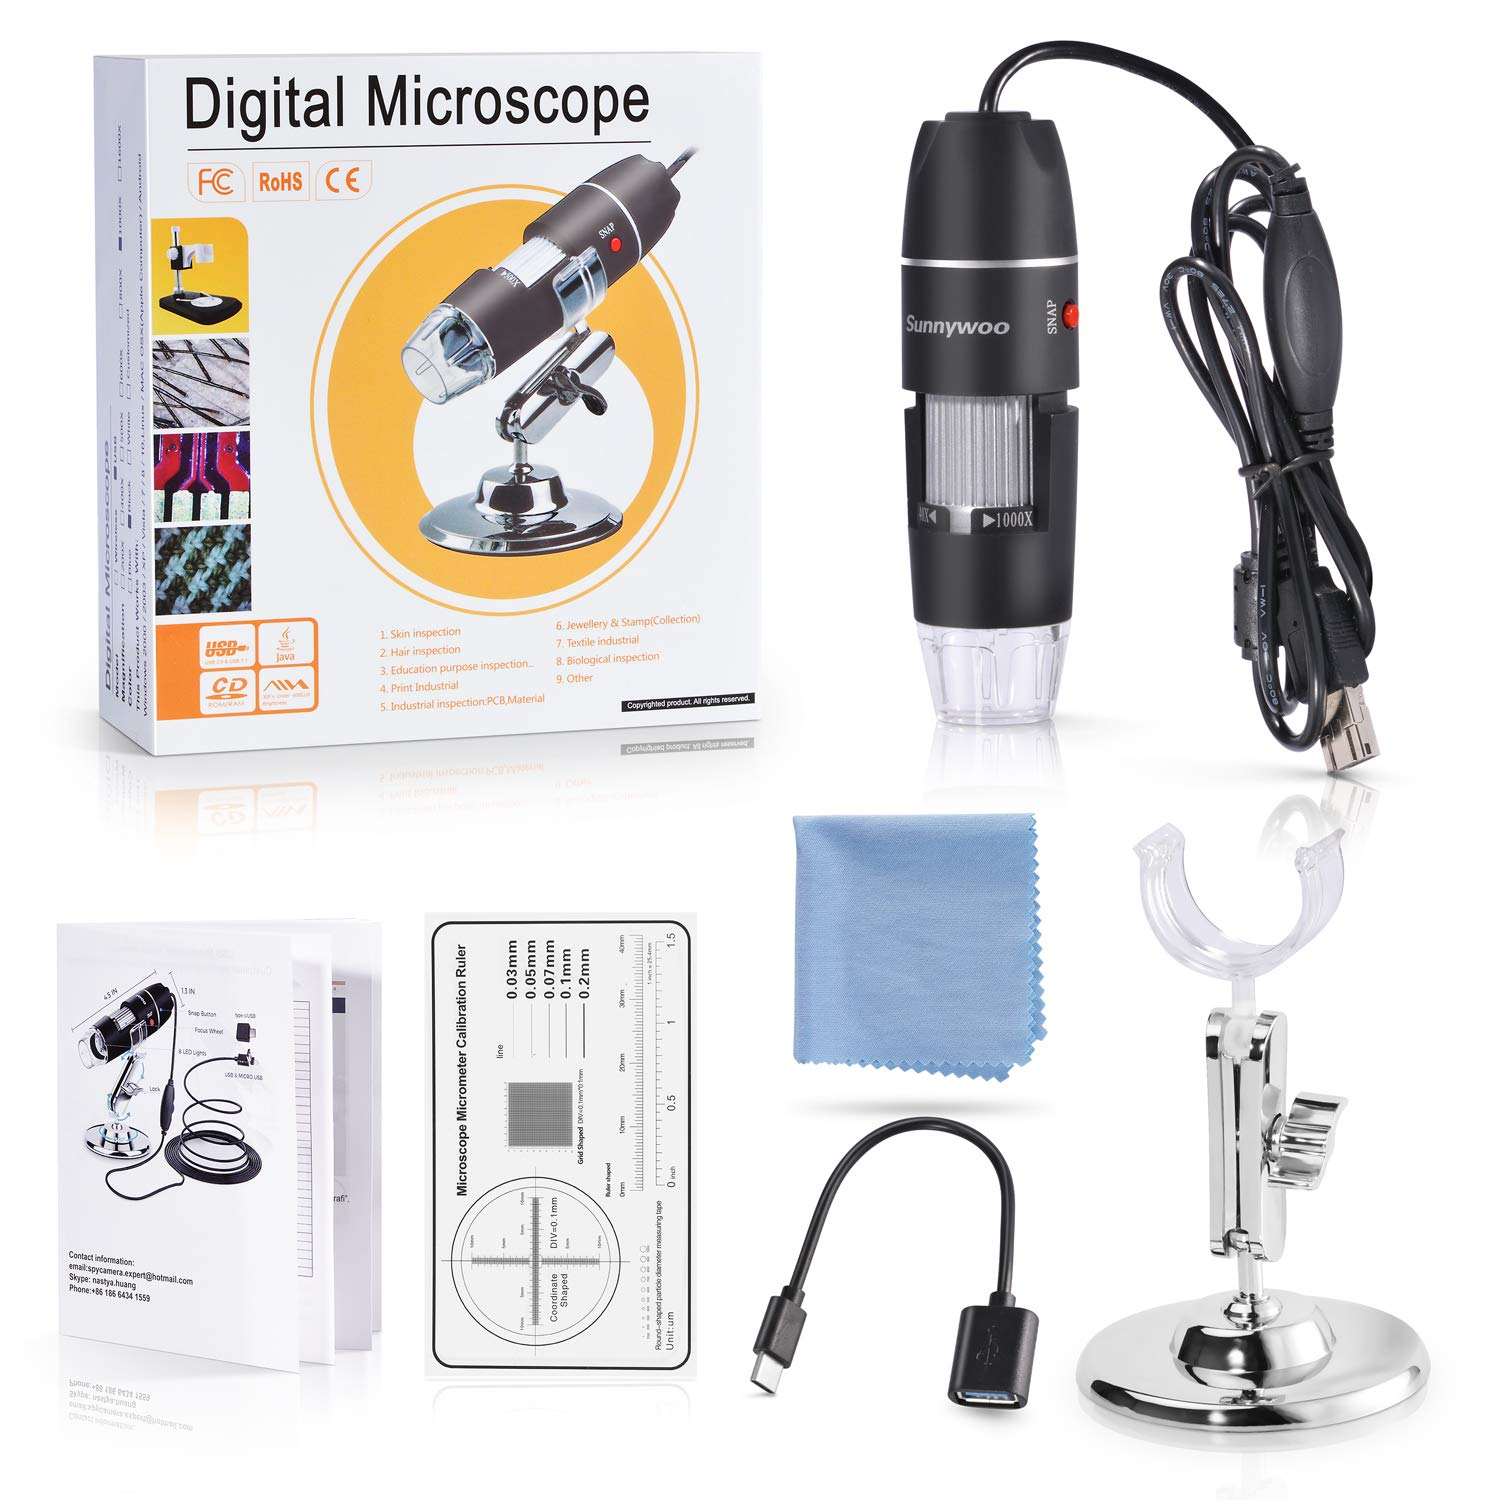 USB Microscope,1000x Zoom 1080p Digital Mini Microscope Camera with OTG Adapter and Adjustable Stand, Compatible for Android,Mac,Window,Linux by DigiHero (Image #6)